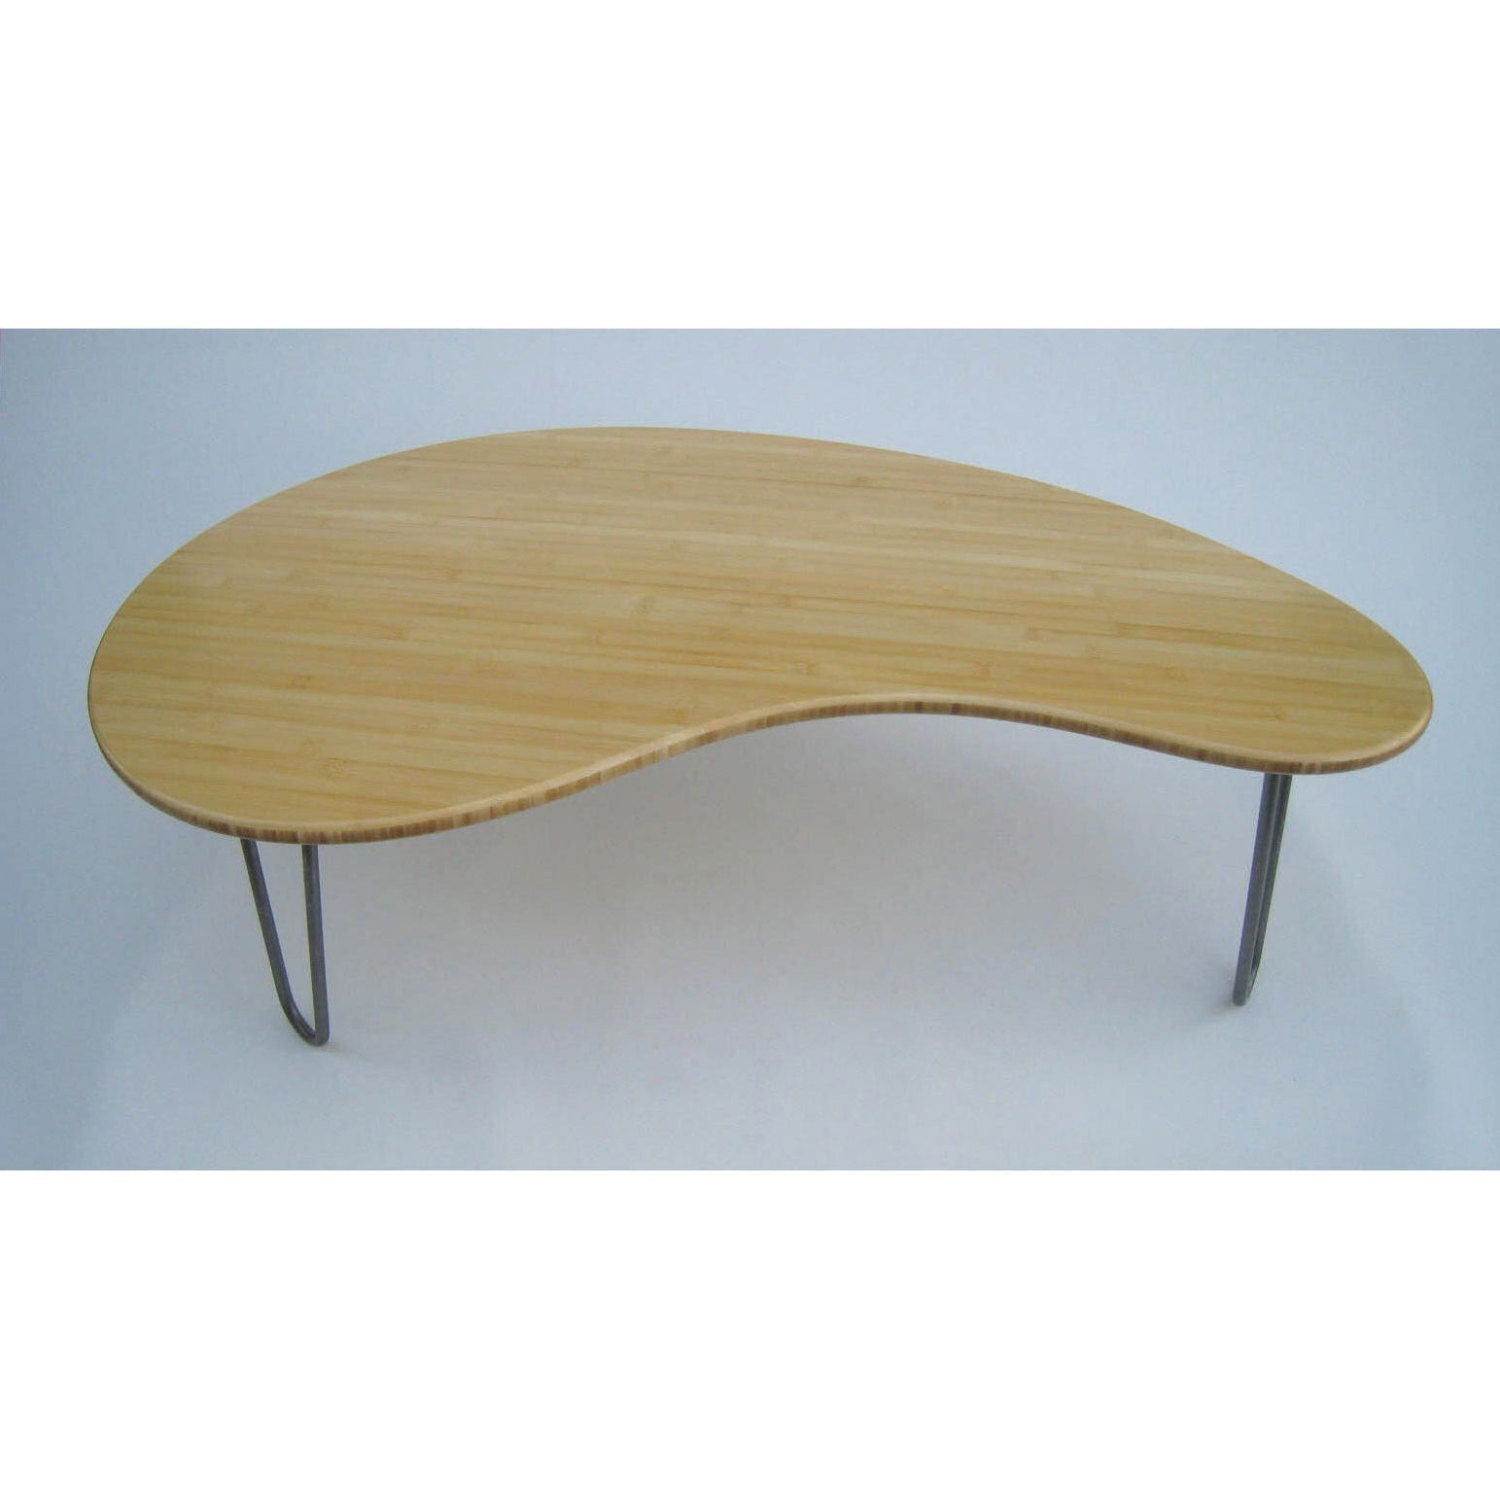 custom standing desk kidney shaped mid. mid century modern coffee table kidney bean shaped amorphic desk custom standing